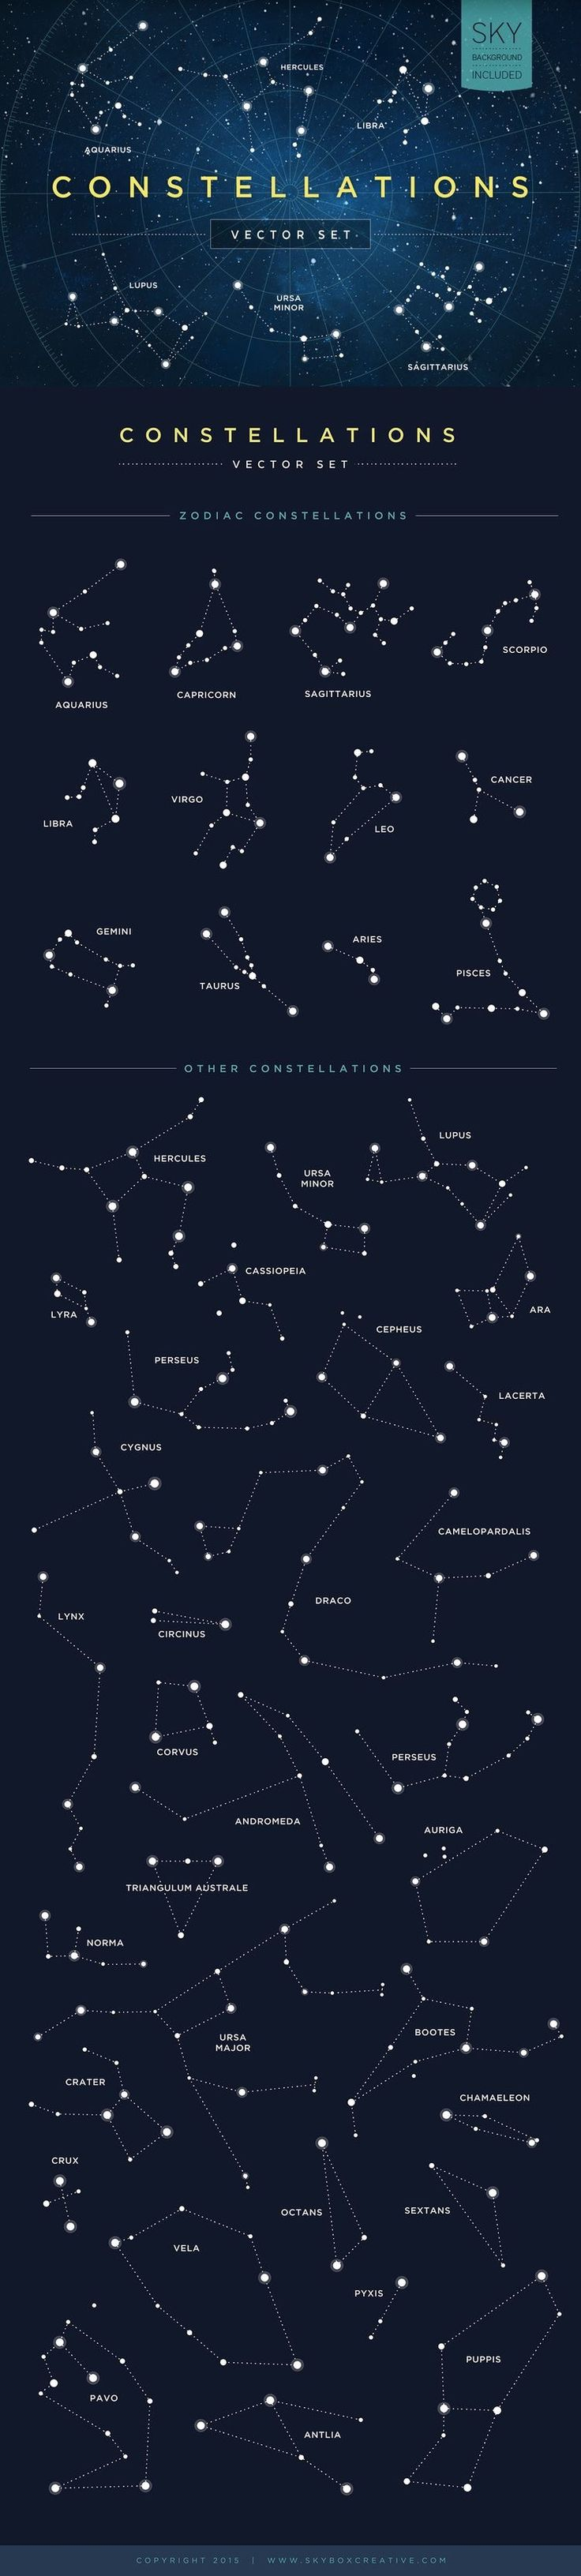 #astrology #ZodiacSigns #constellations